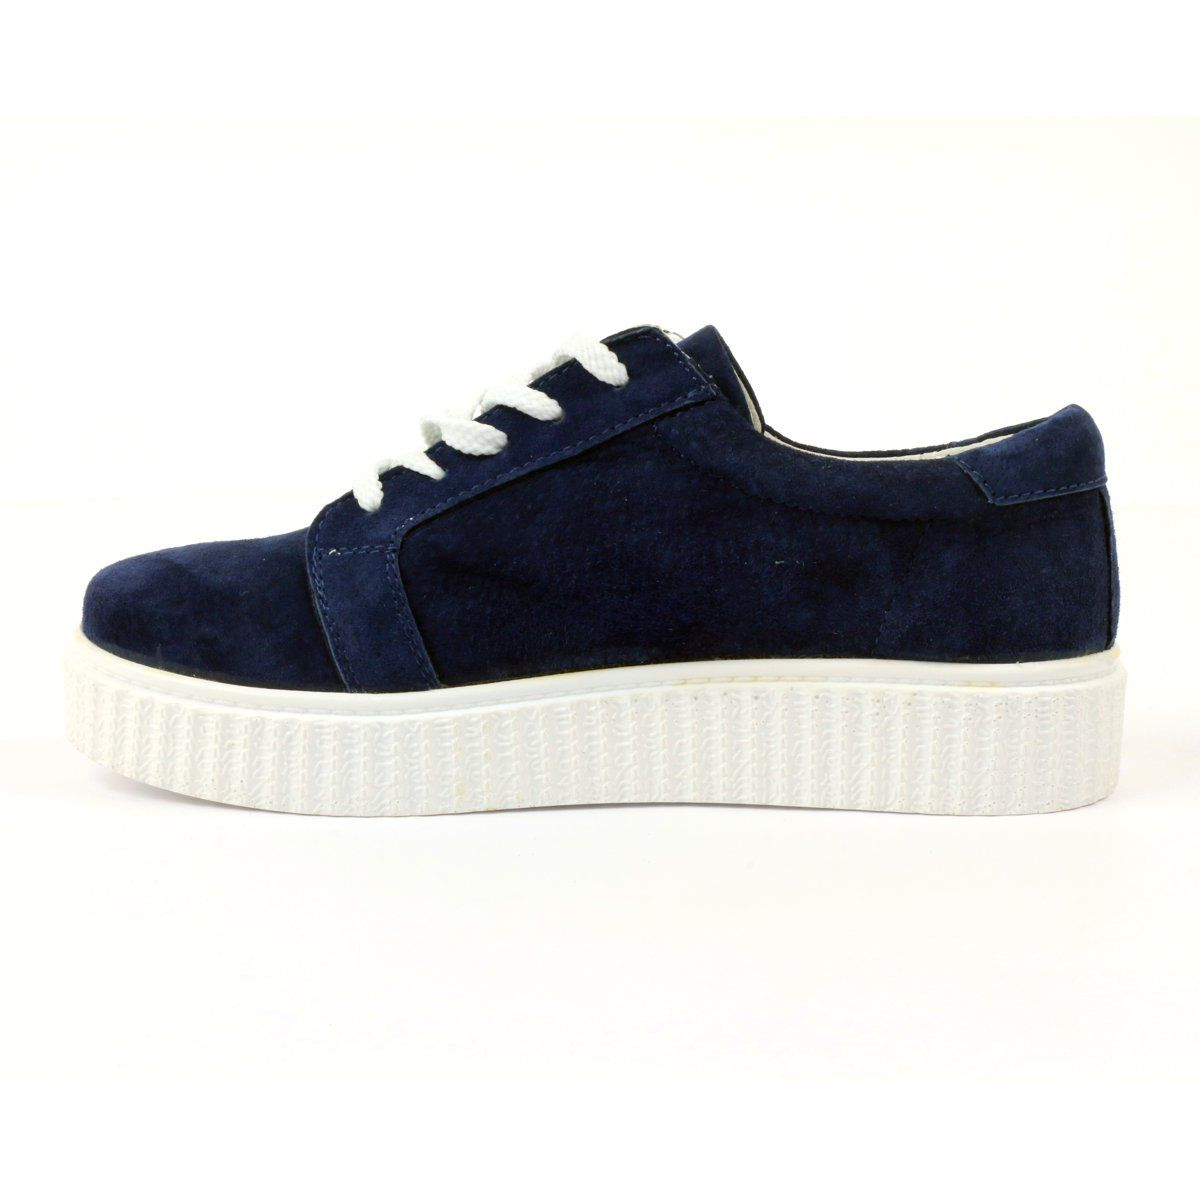 Creepersy Leather Shoes Filippo 036 Navy Womens Sneakers Leather Shoes Leather